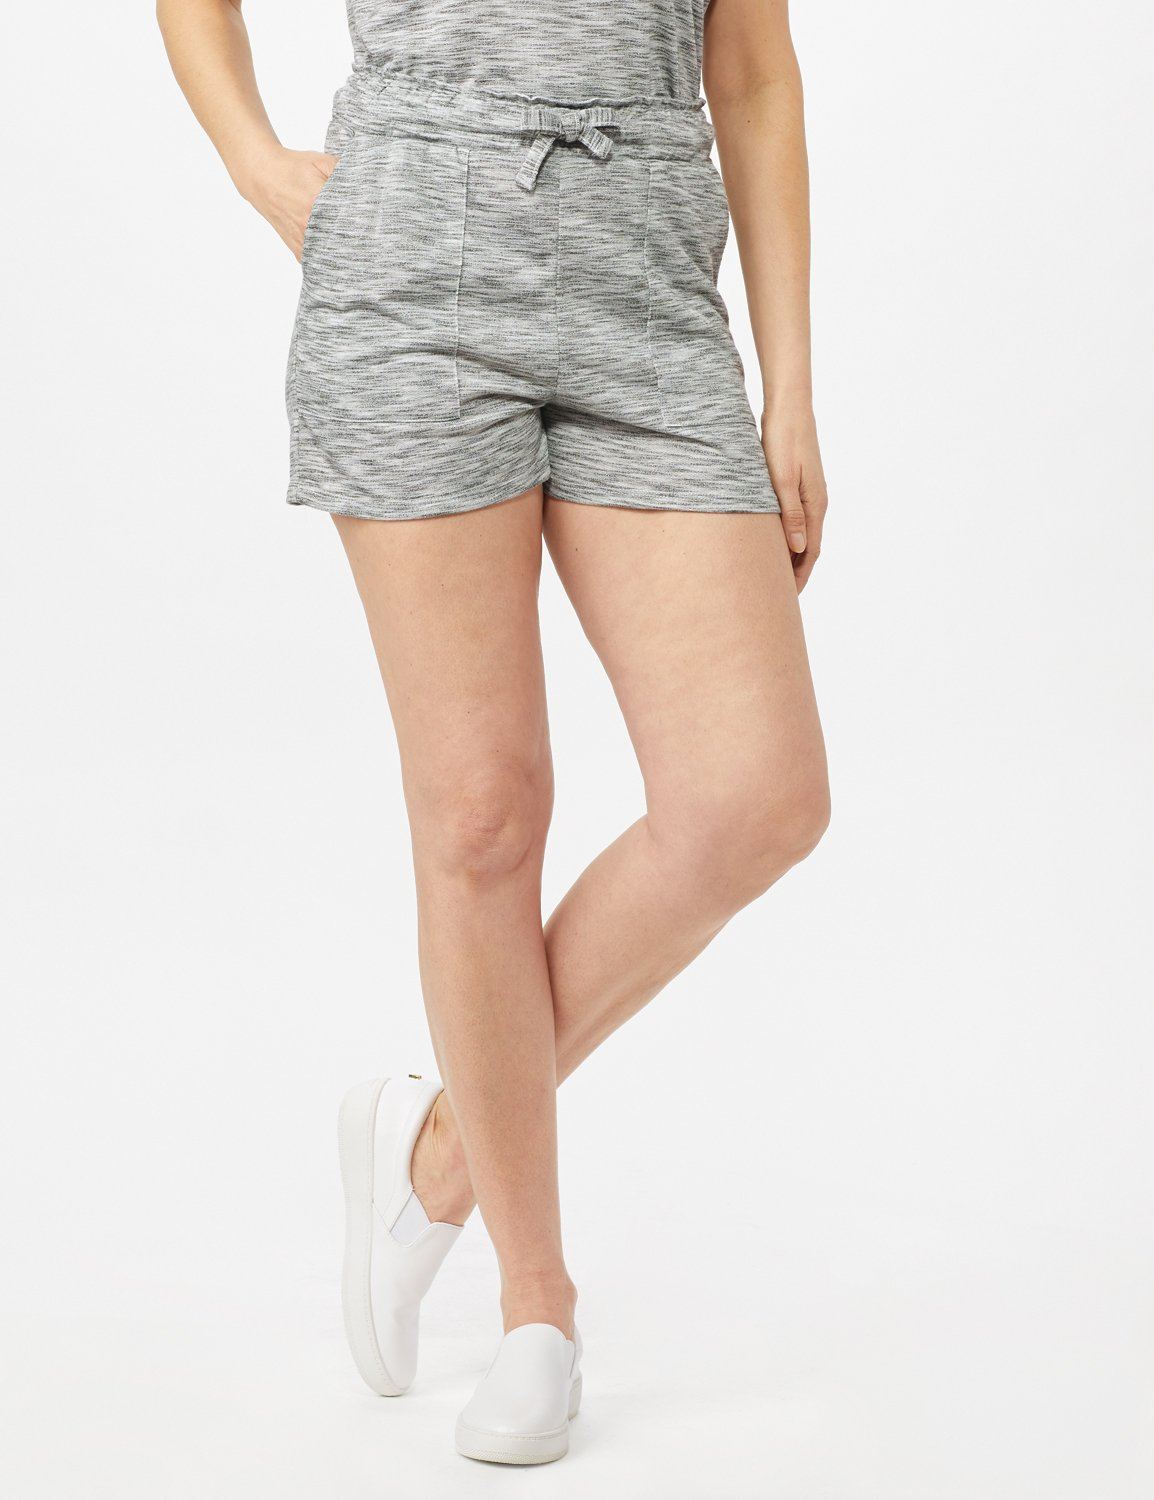 Space Dye French Terry Short -Grey - Front